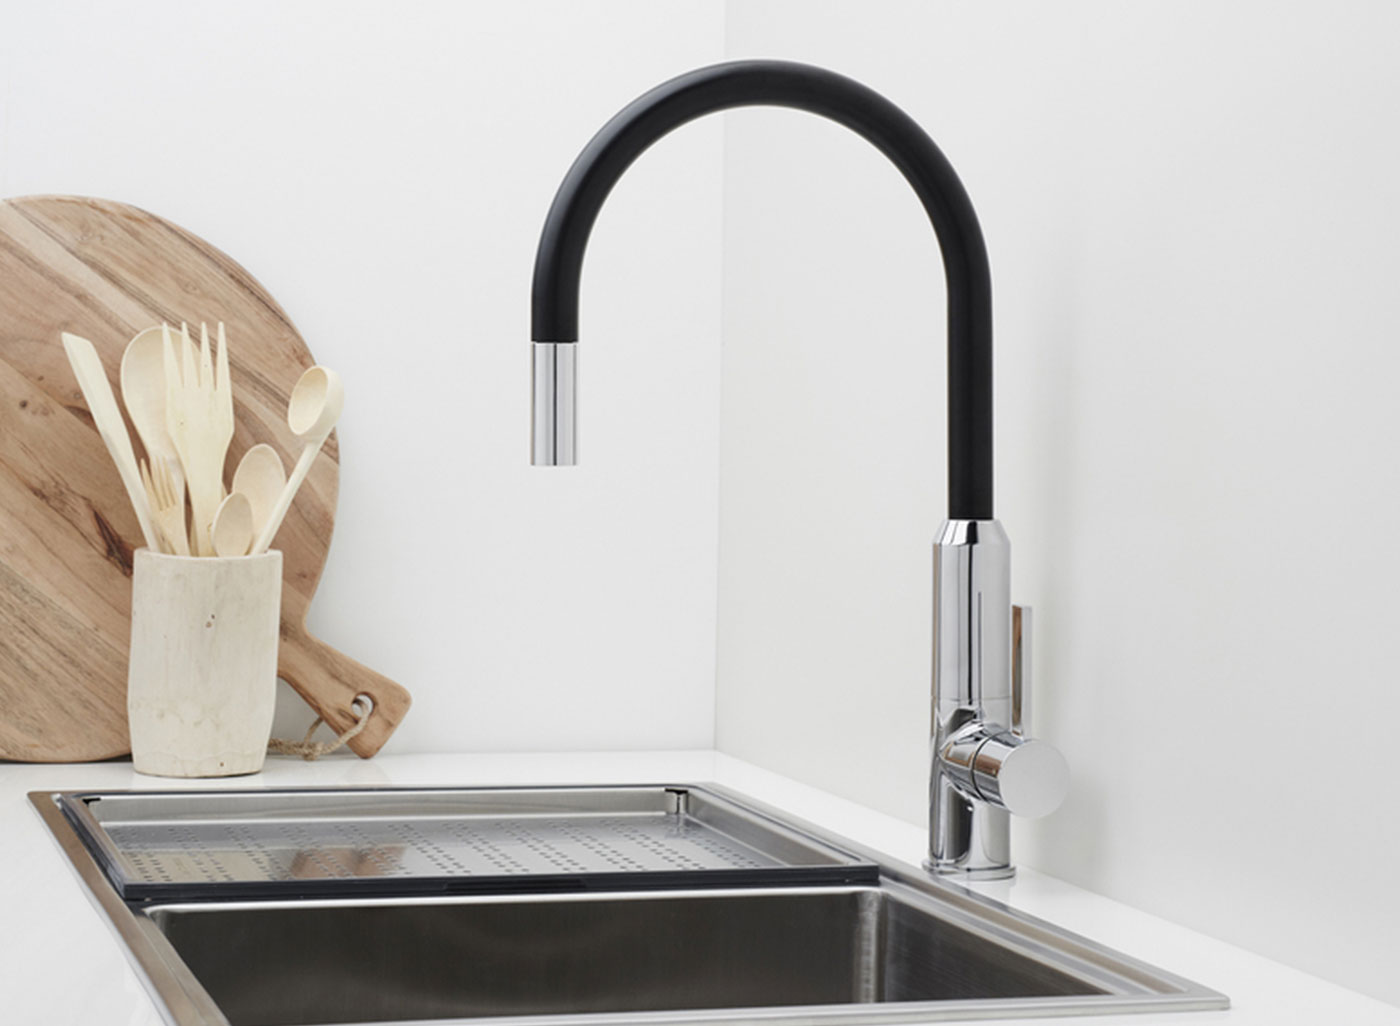 with a two tone finish option making it an ideal kitchen feature.